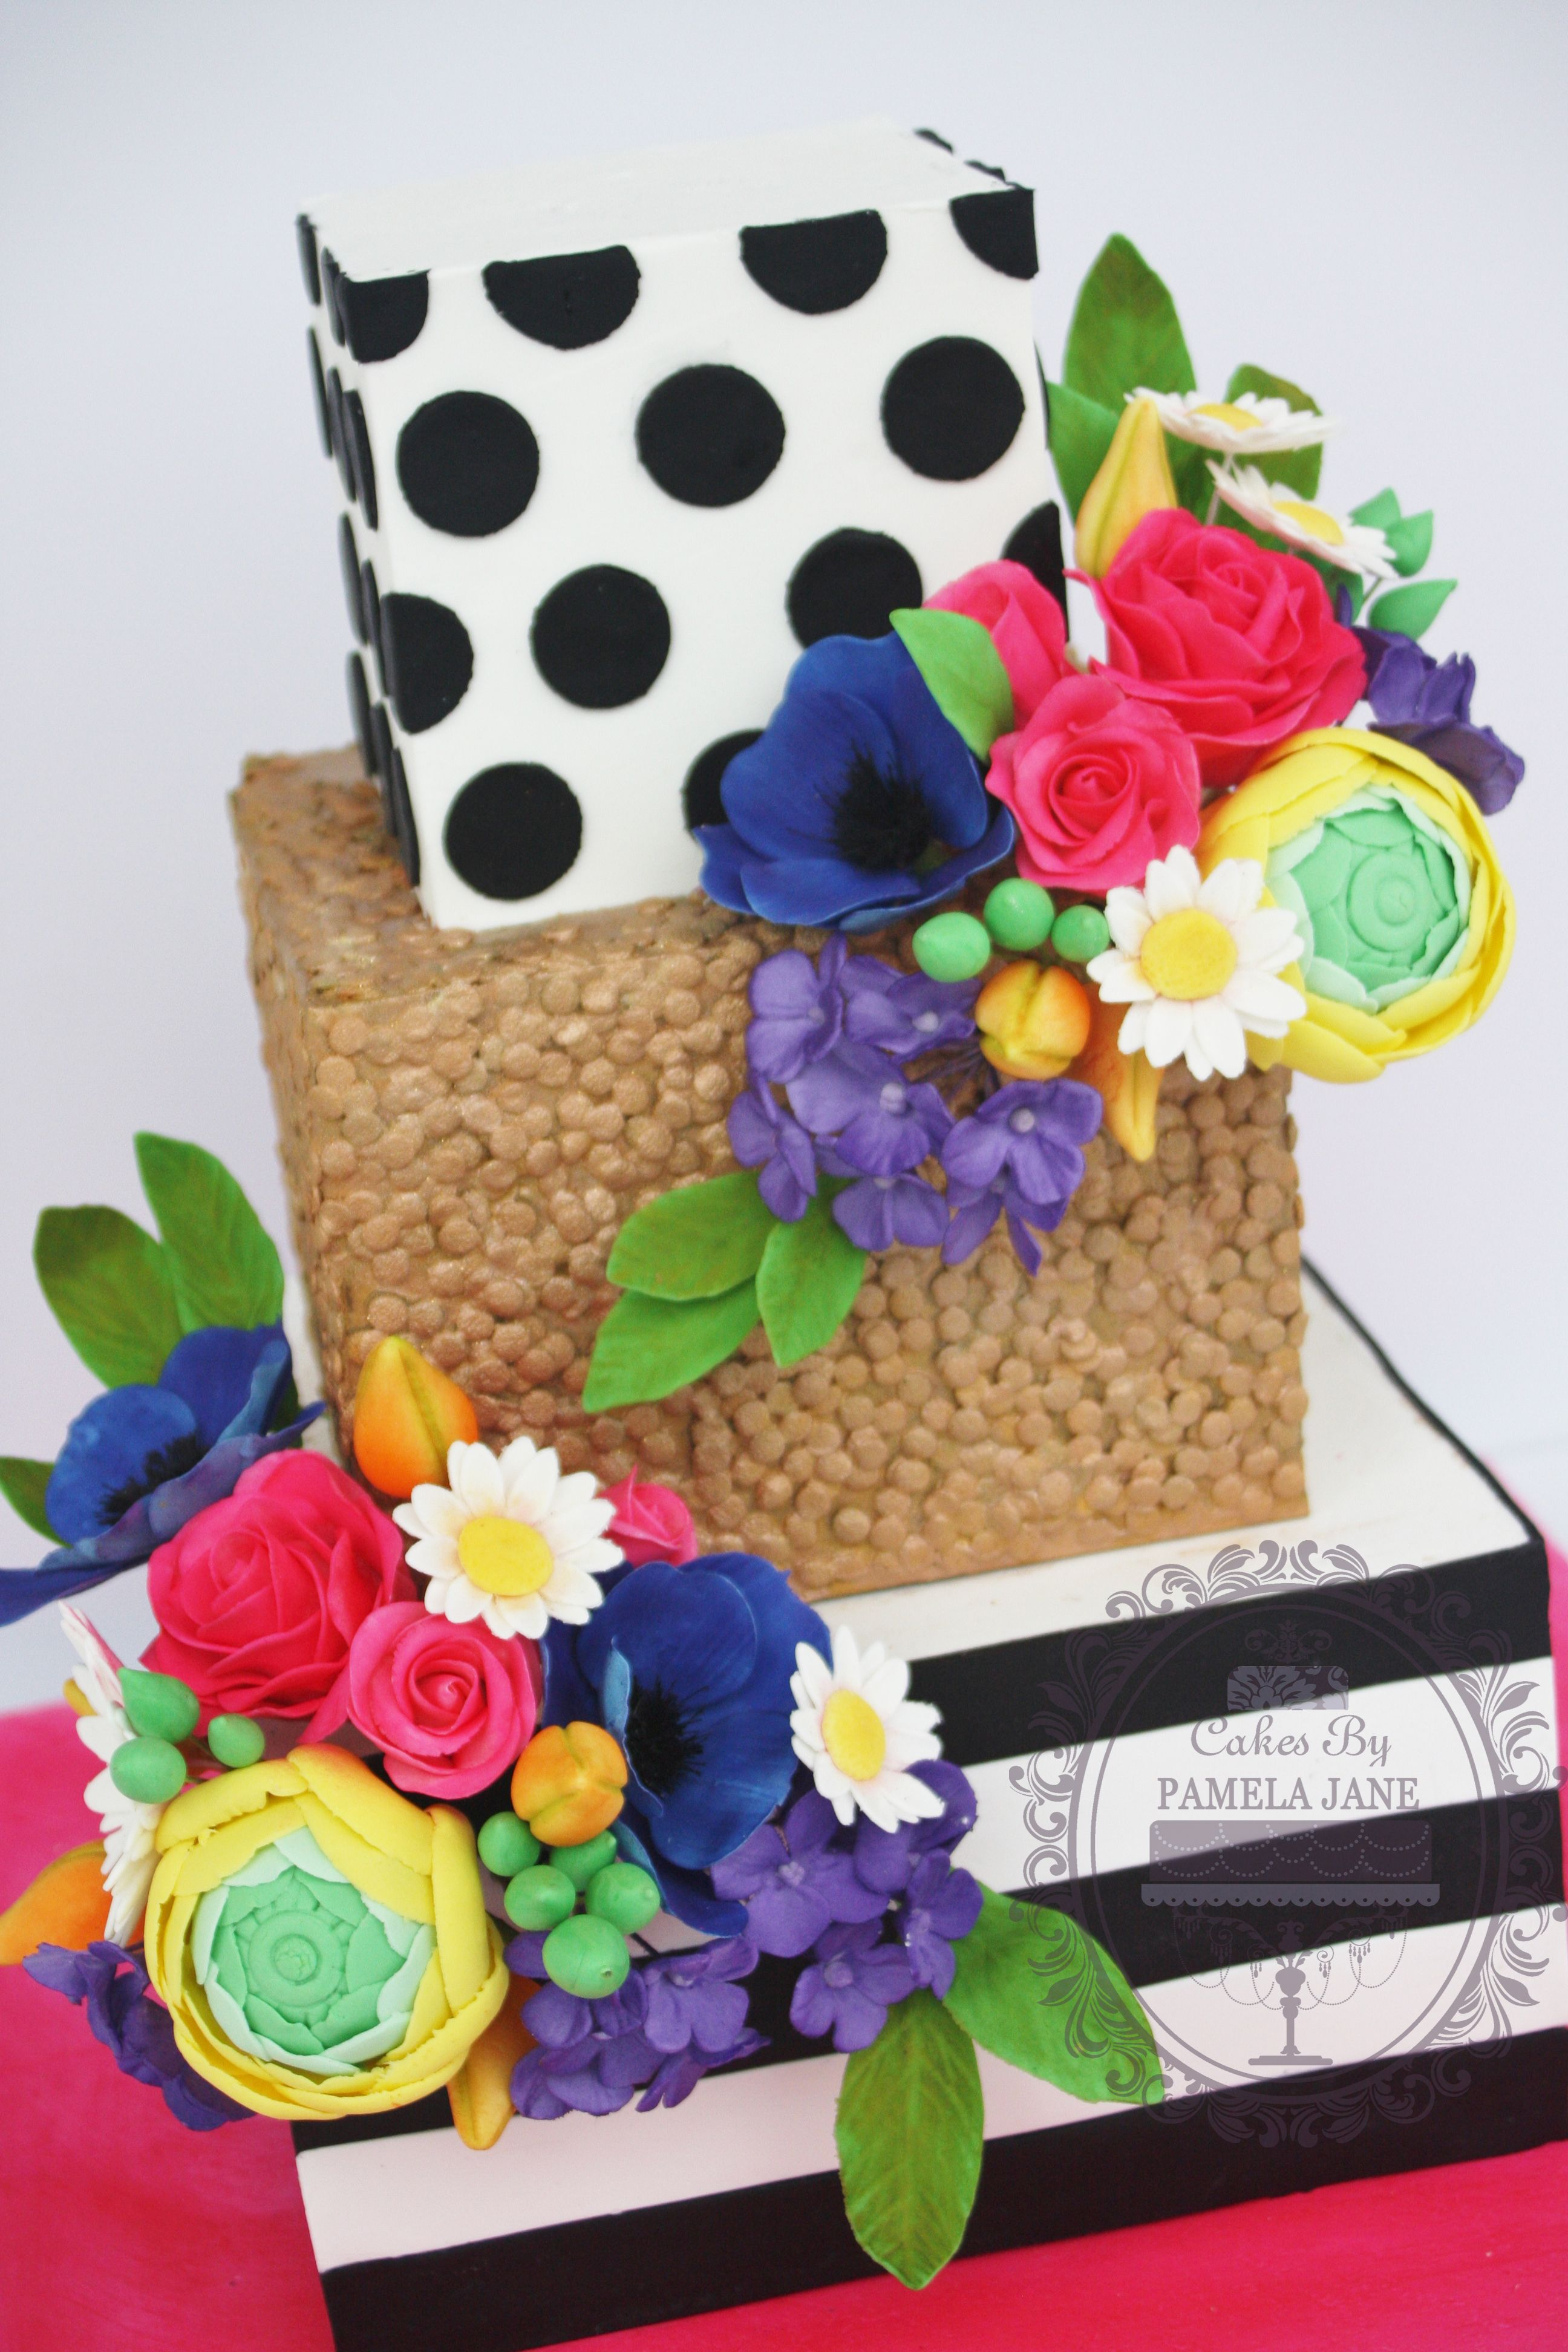 Bright Rainbow Colored Gumpaste Flowers Adorn This Black And White